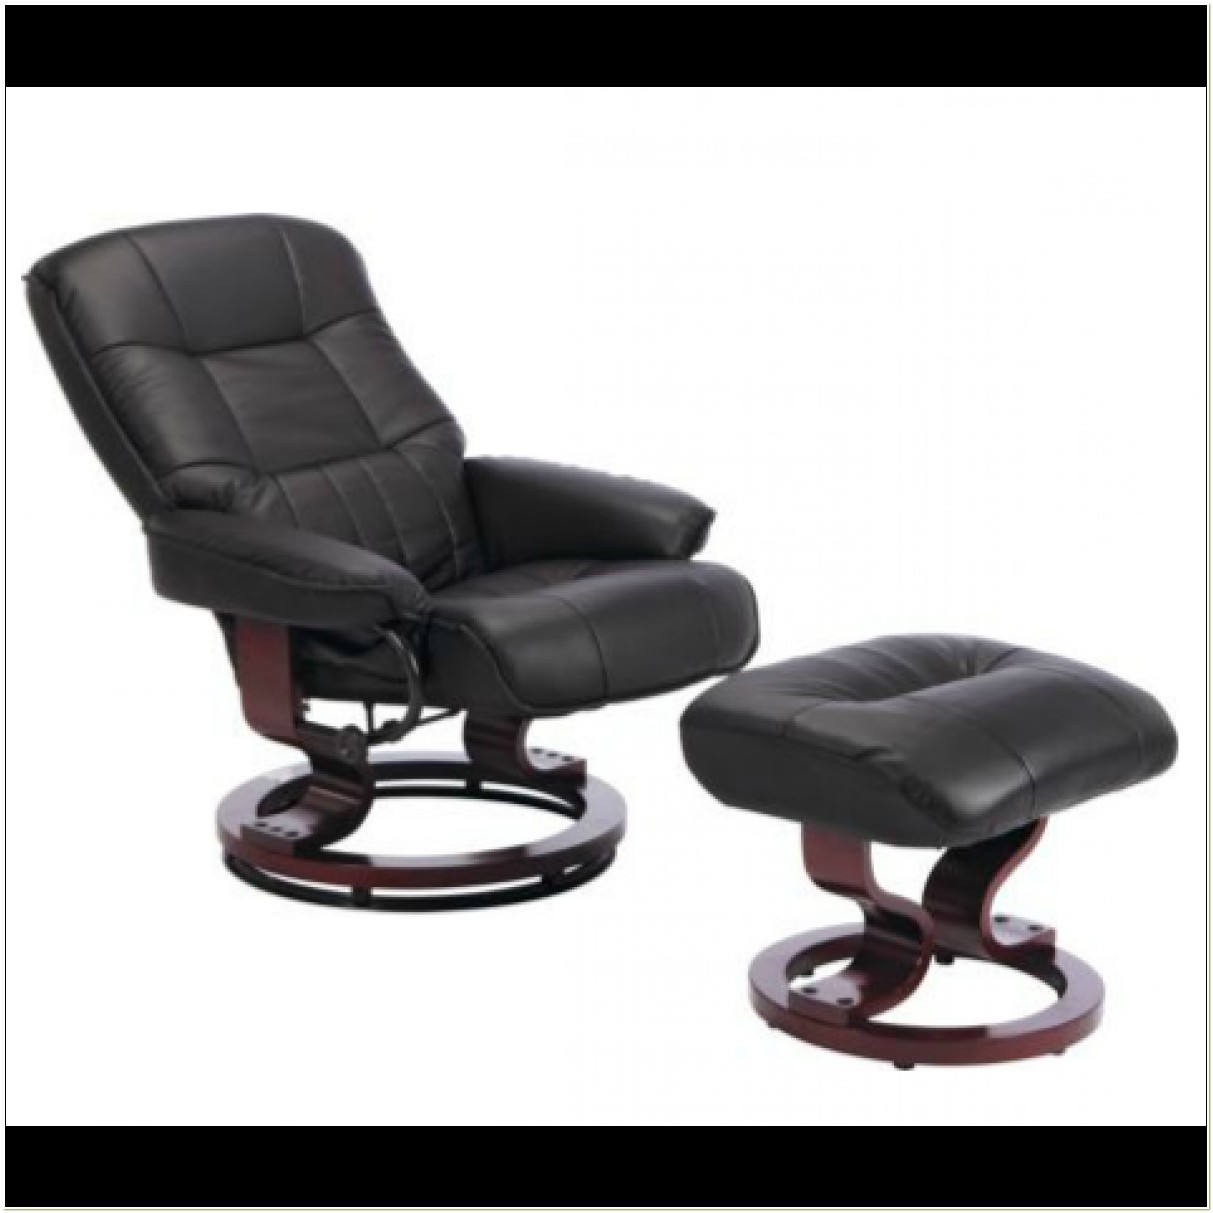 Black Leather Reclining Chair And Footstool